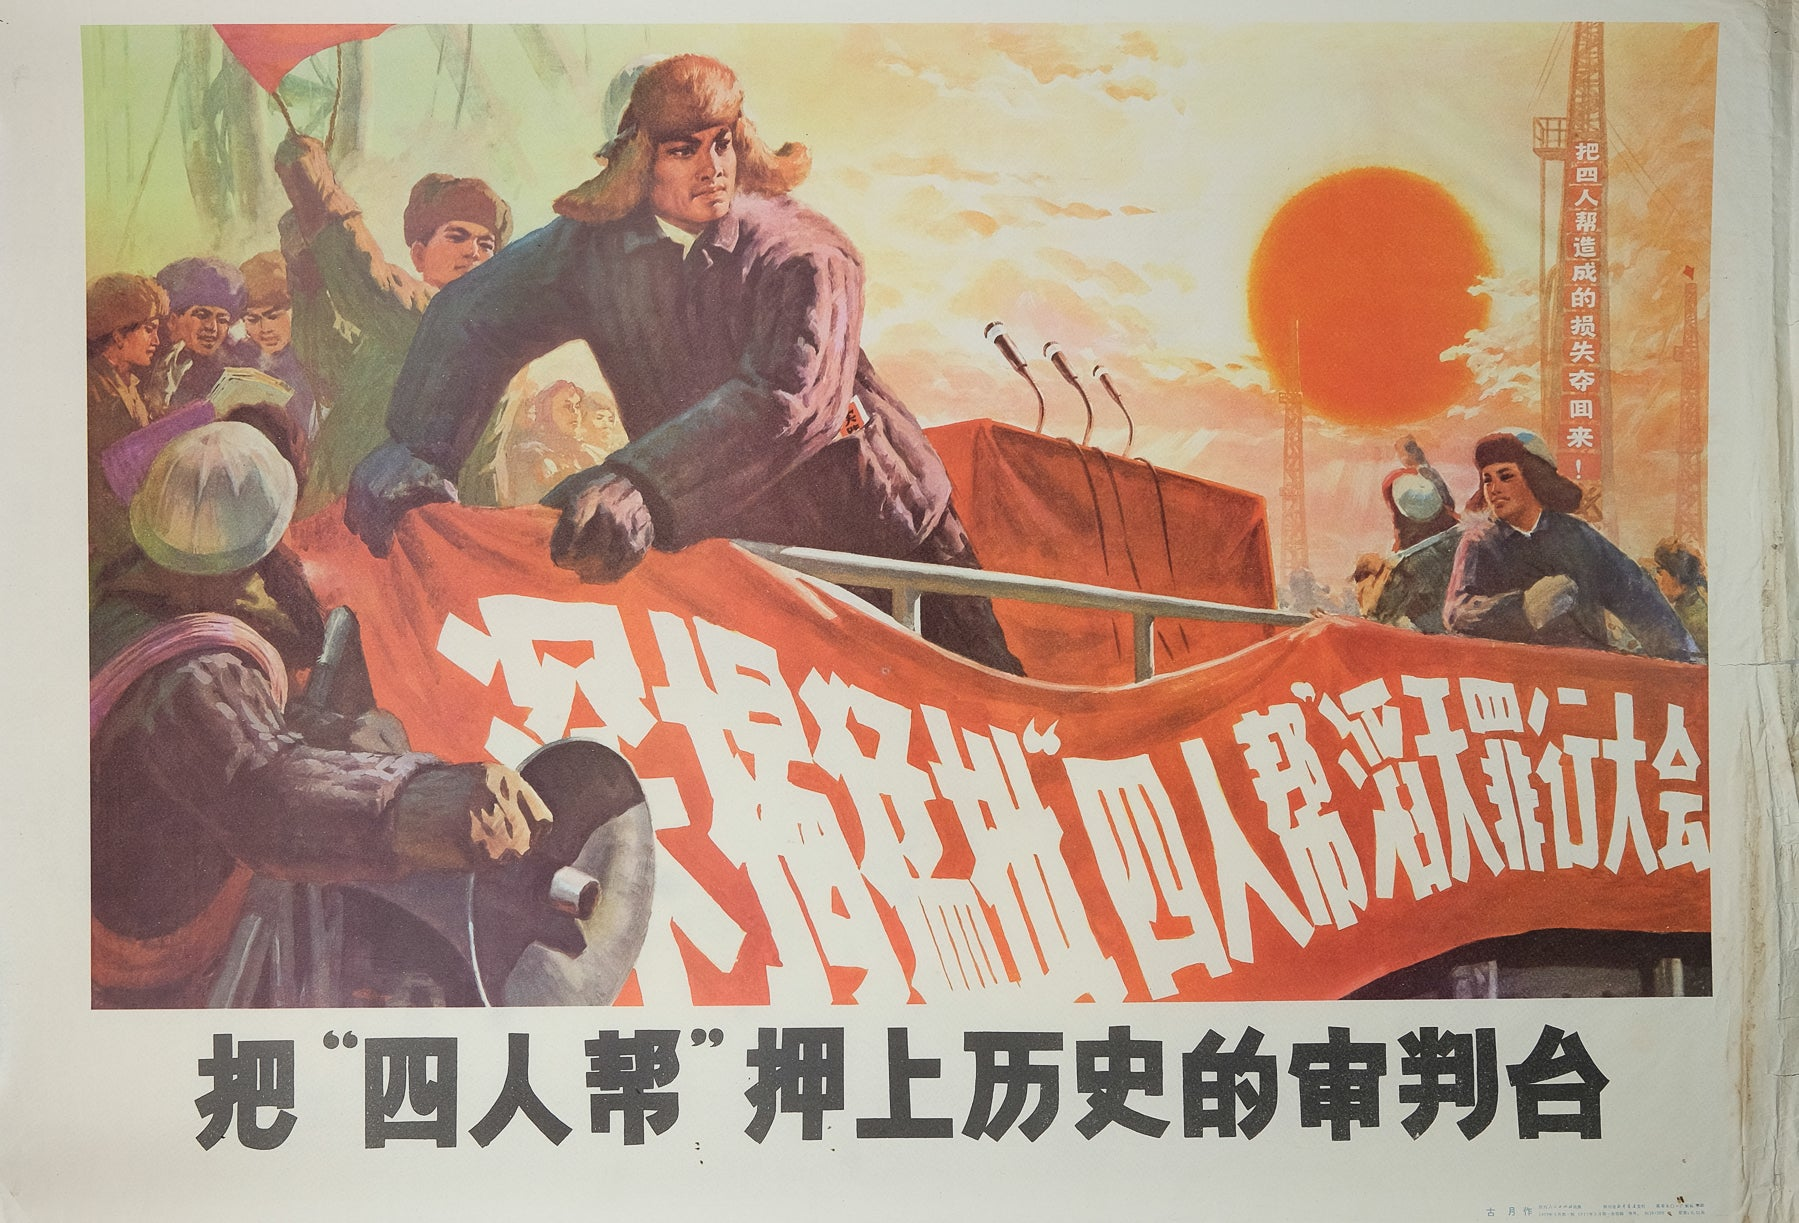 image of 1977 Chinese poster Bring the Gang of Four to trial on the stage of history by Gu Yue